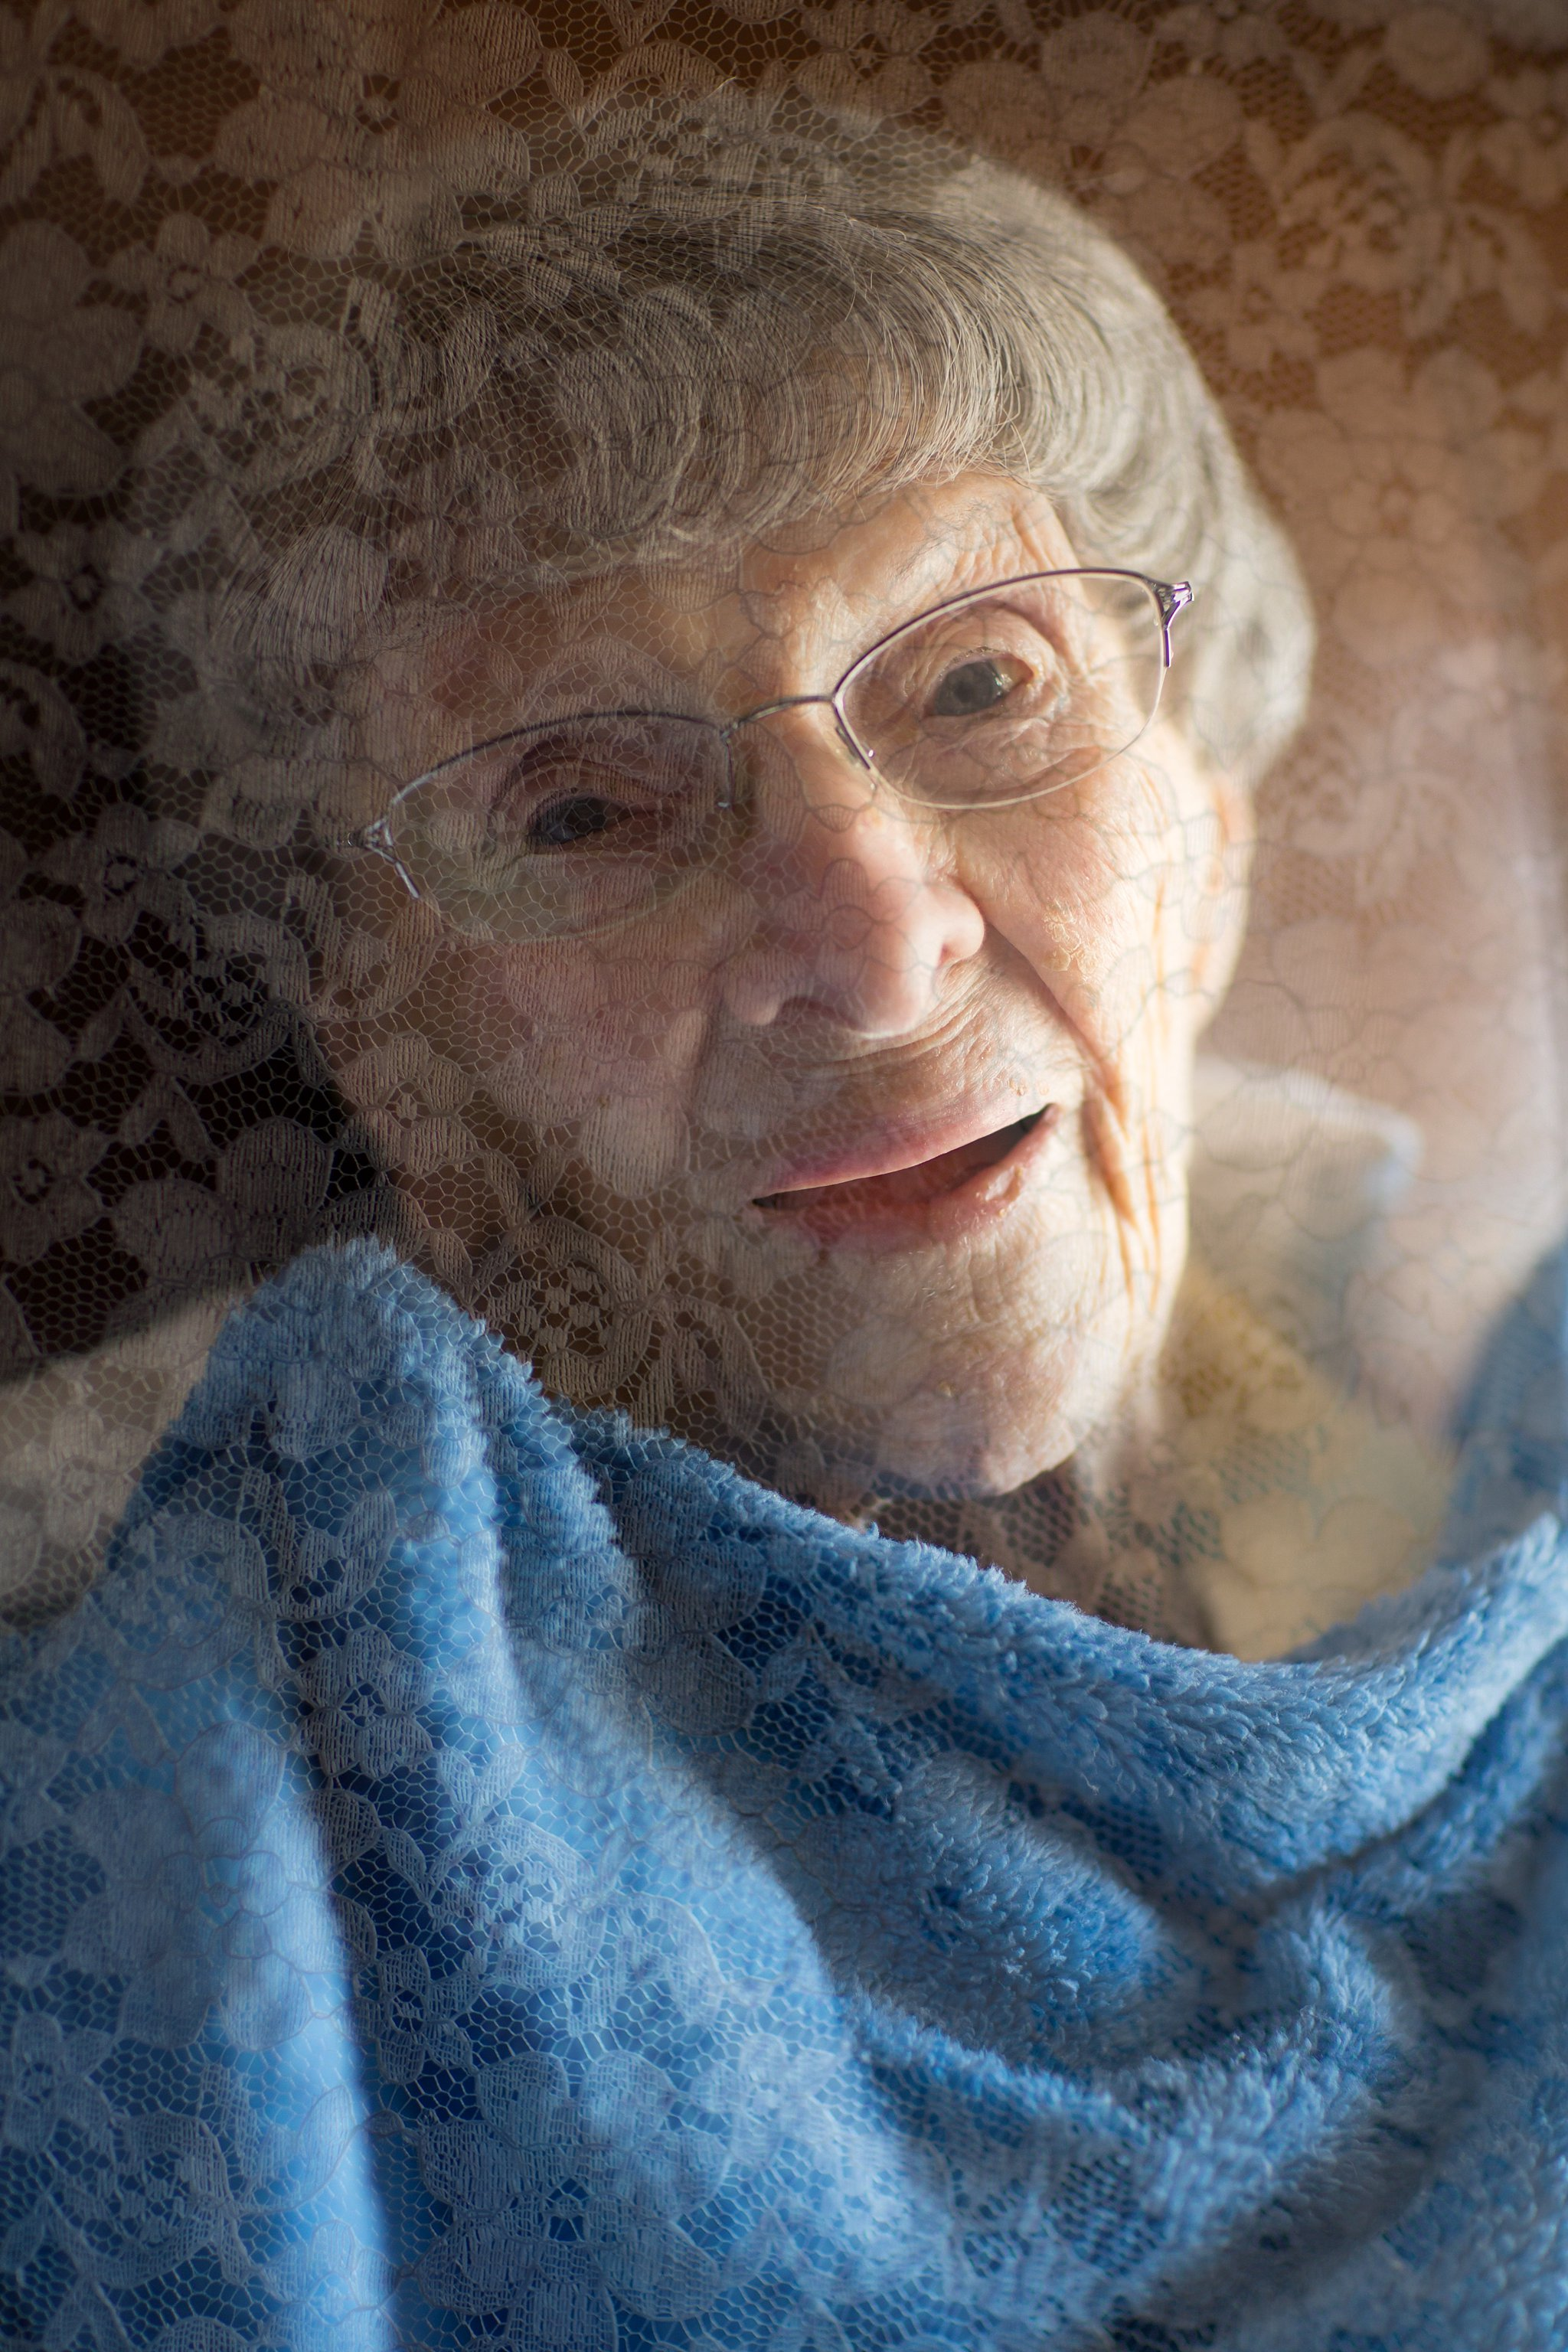 Portrait of Elderly Woman, Photographed Through Lace